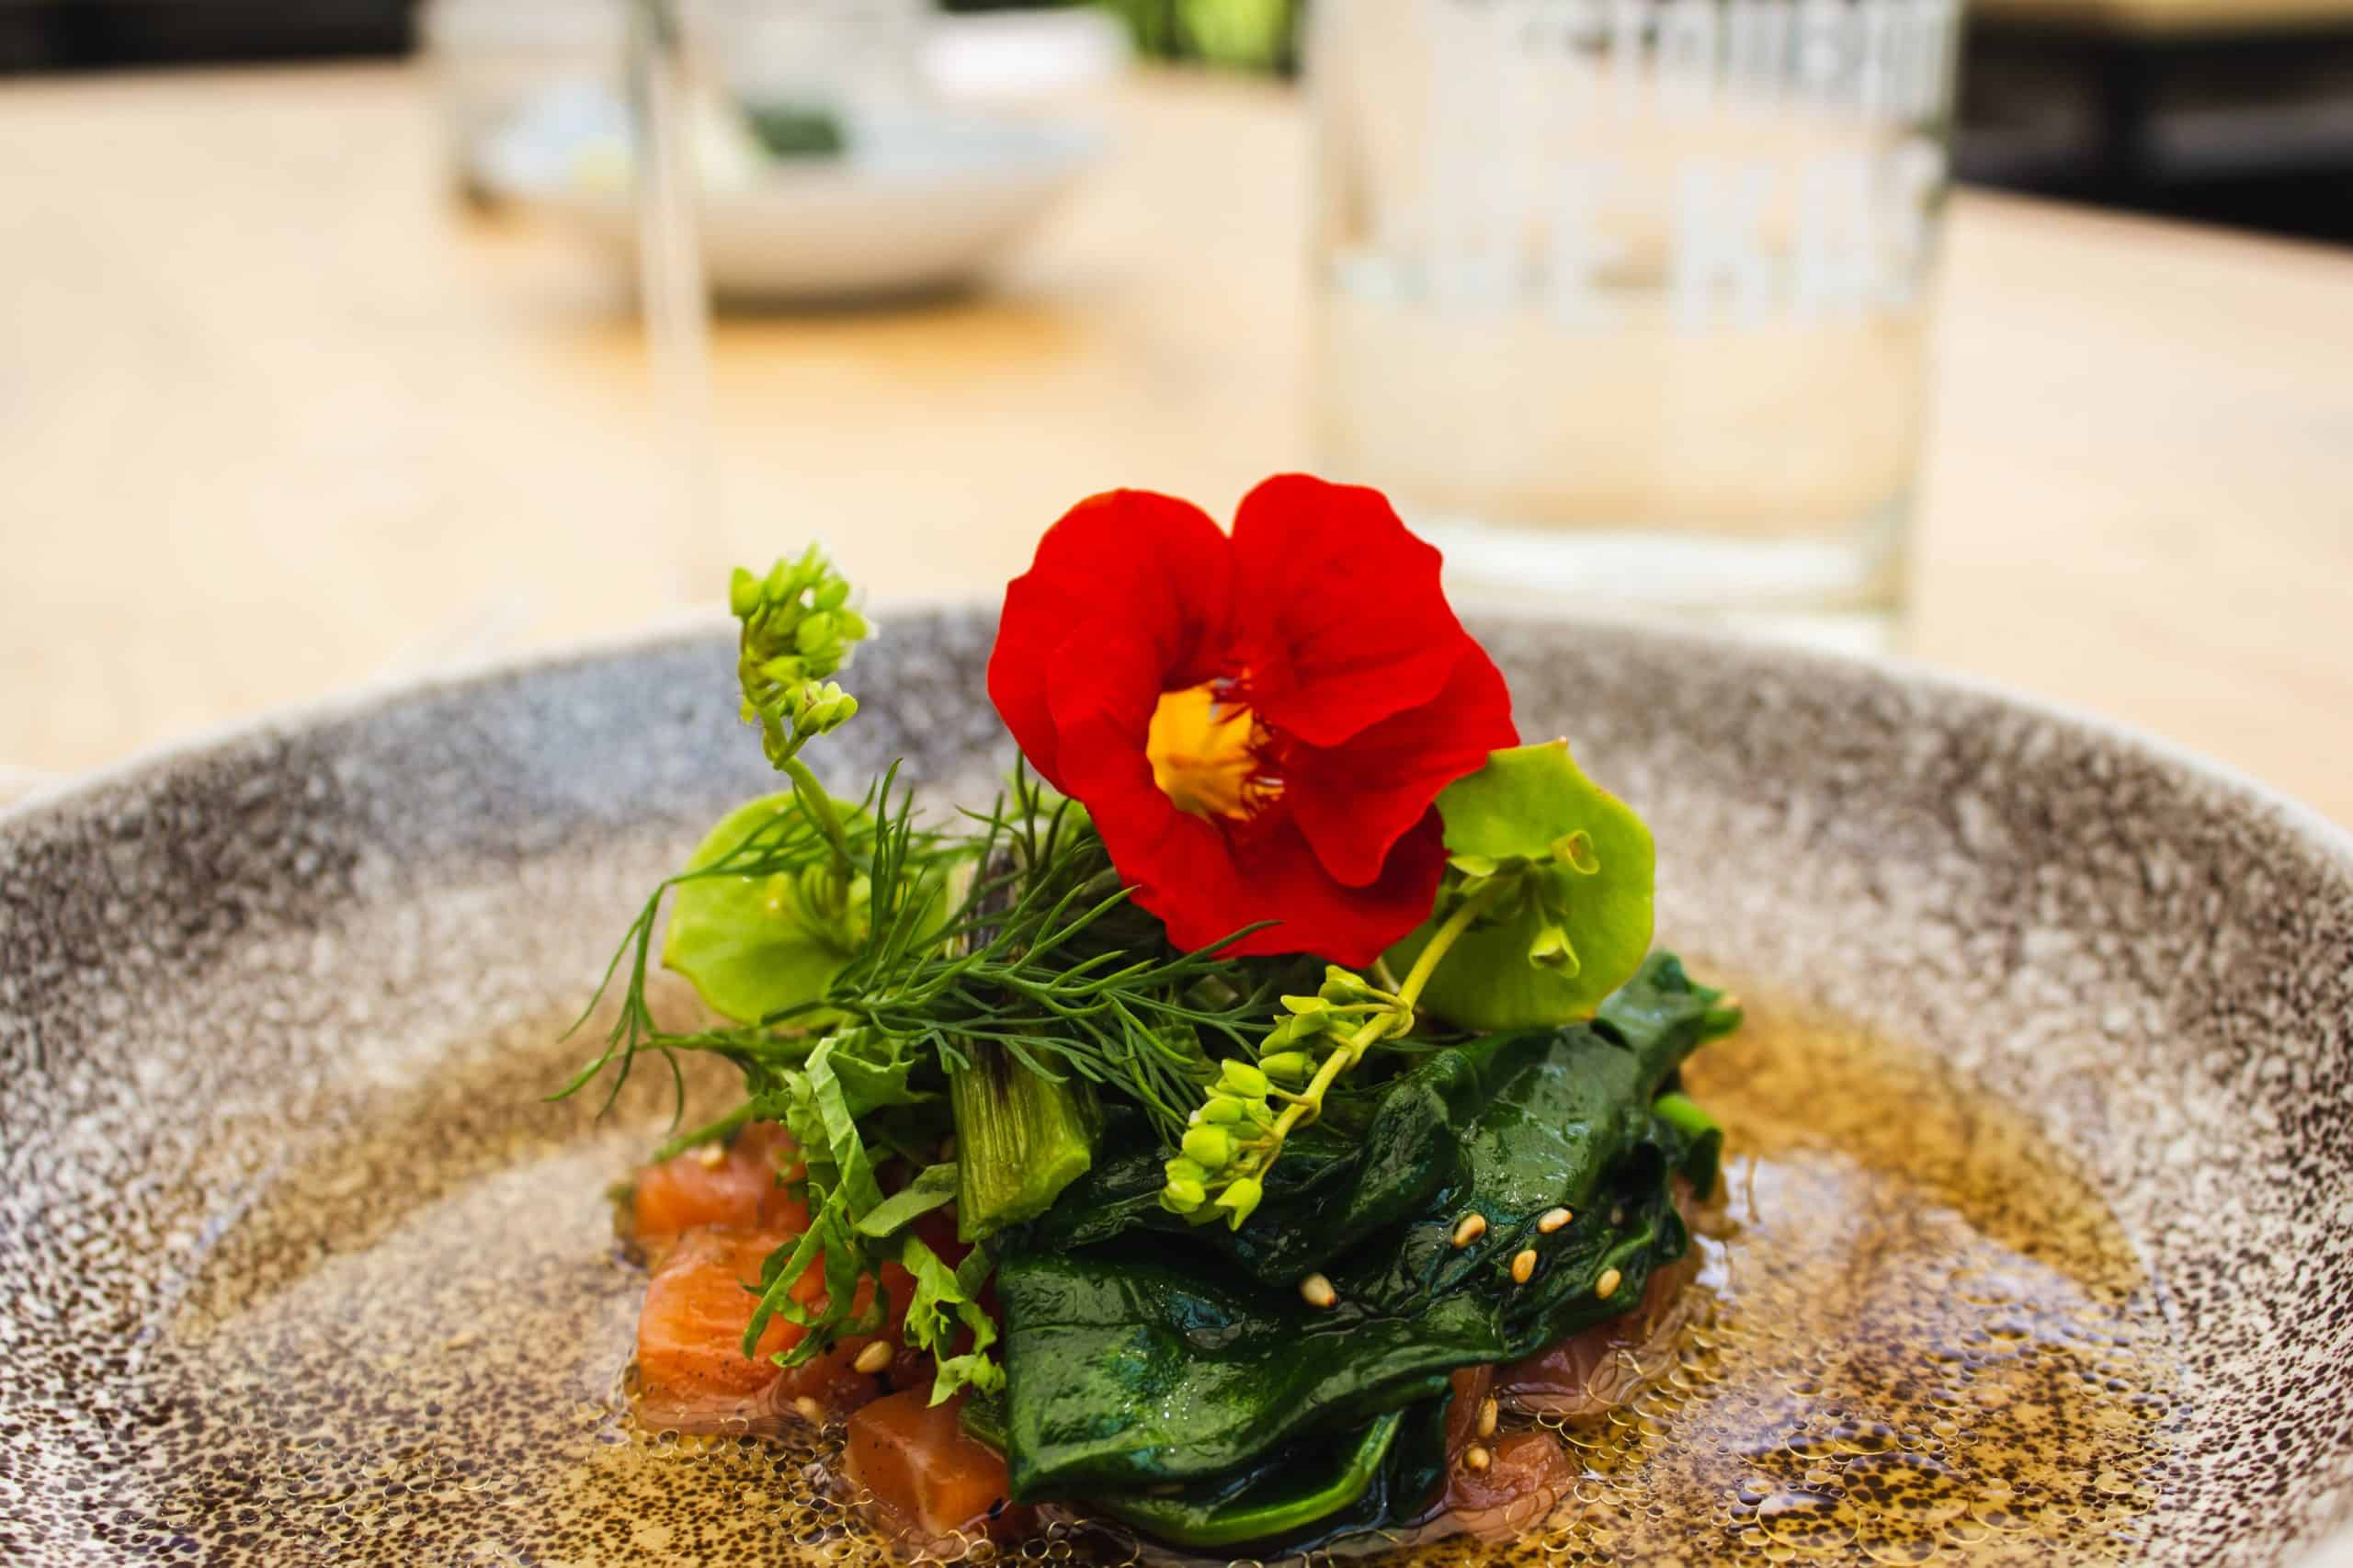 close-up photo of vegetable and red petaled flower on plate